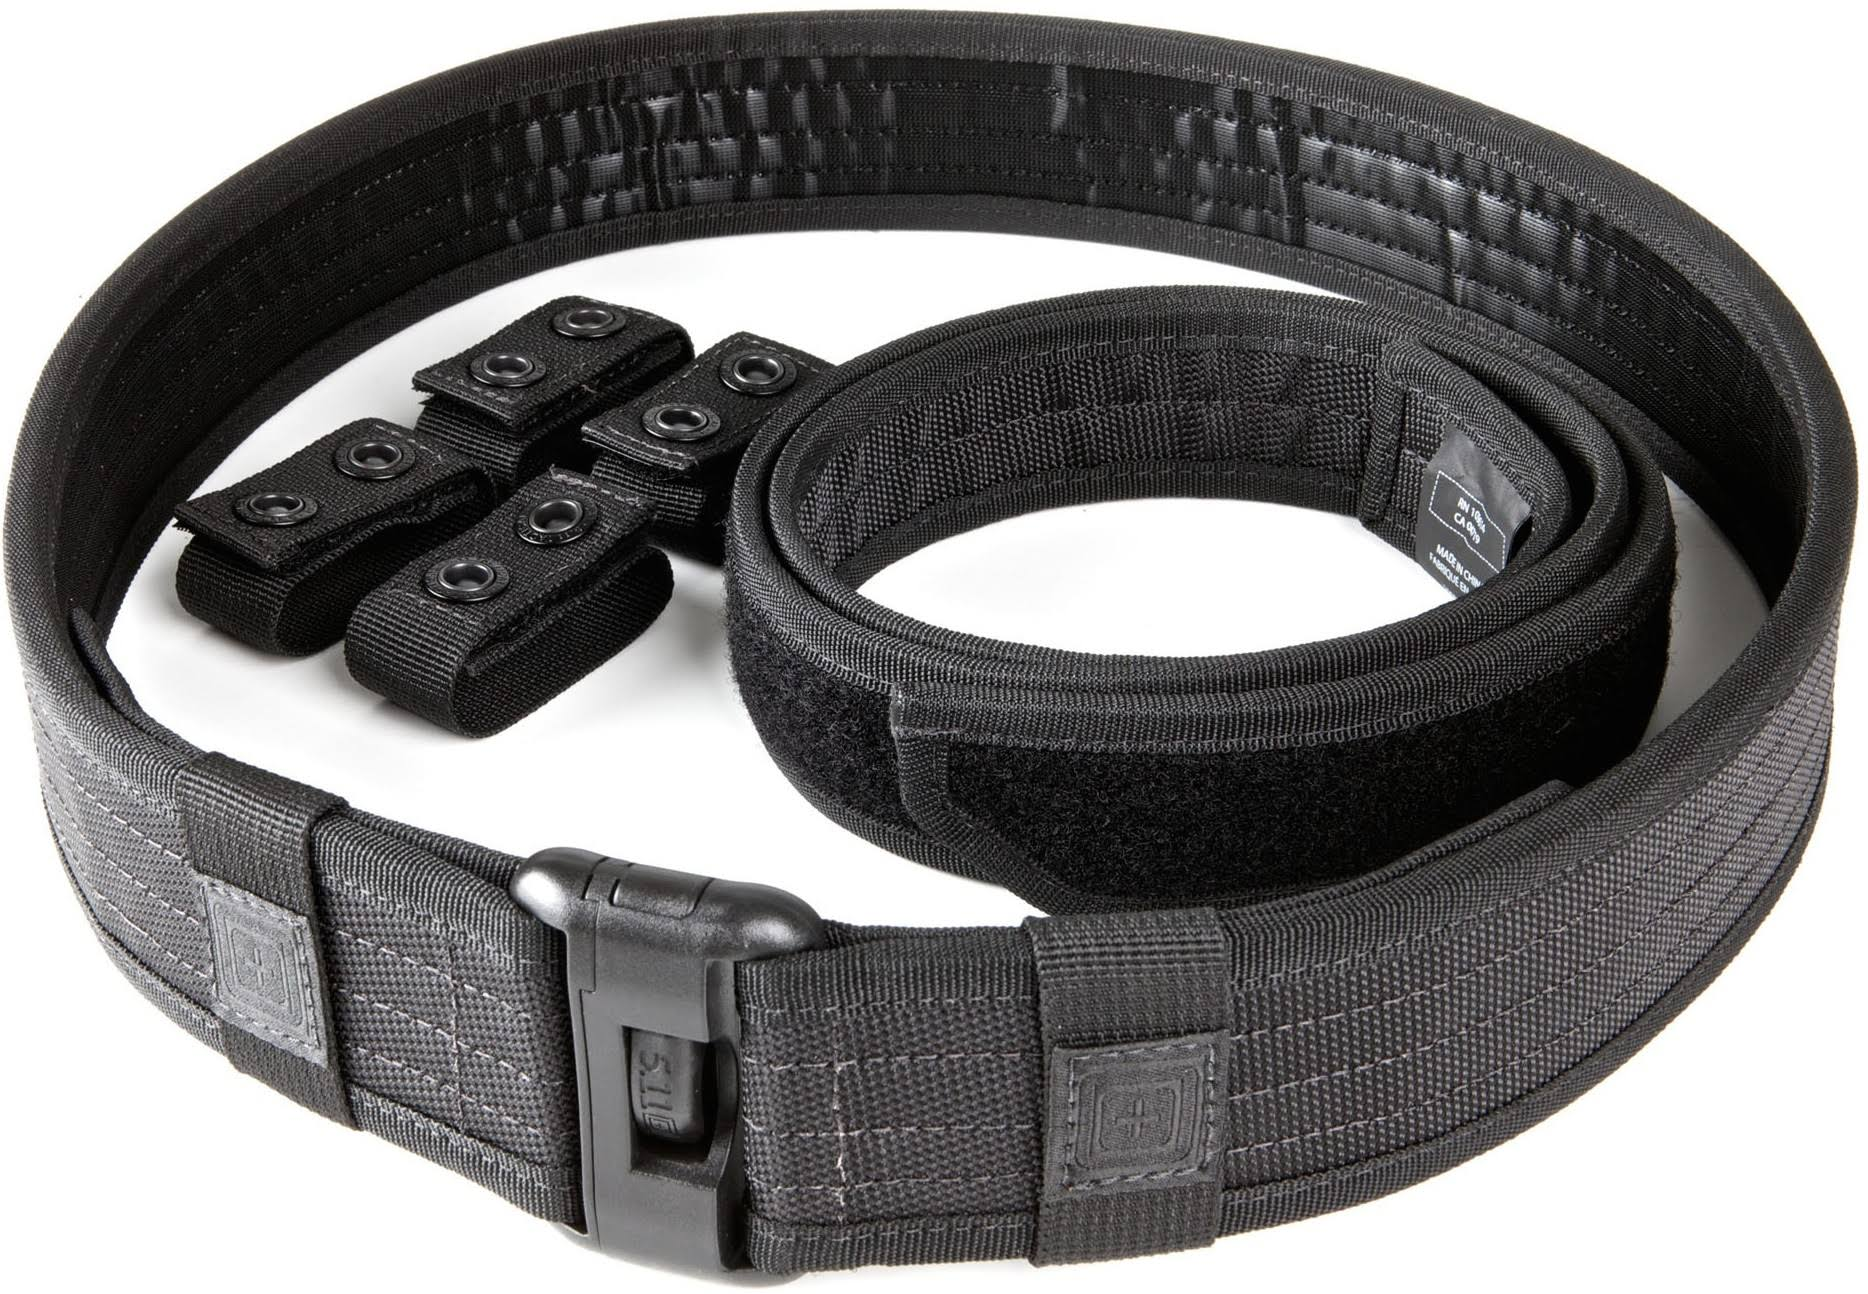 5.11 Tactical Sierra Bravo Duty Belt Kit, Black